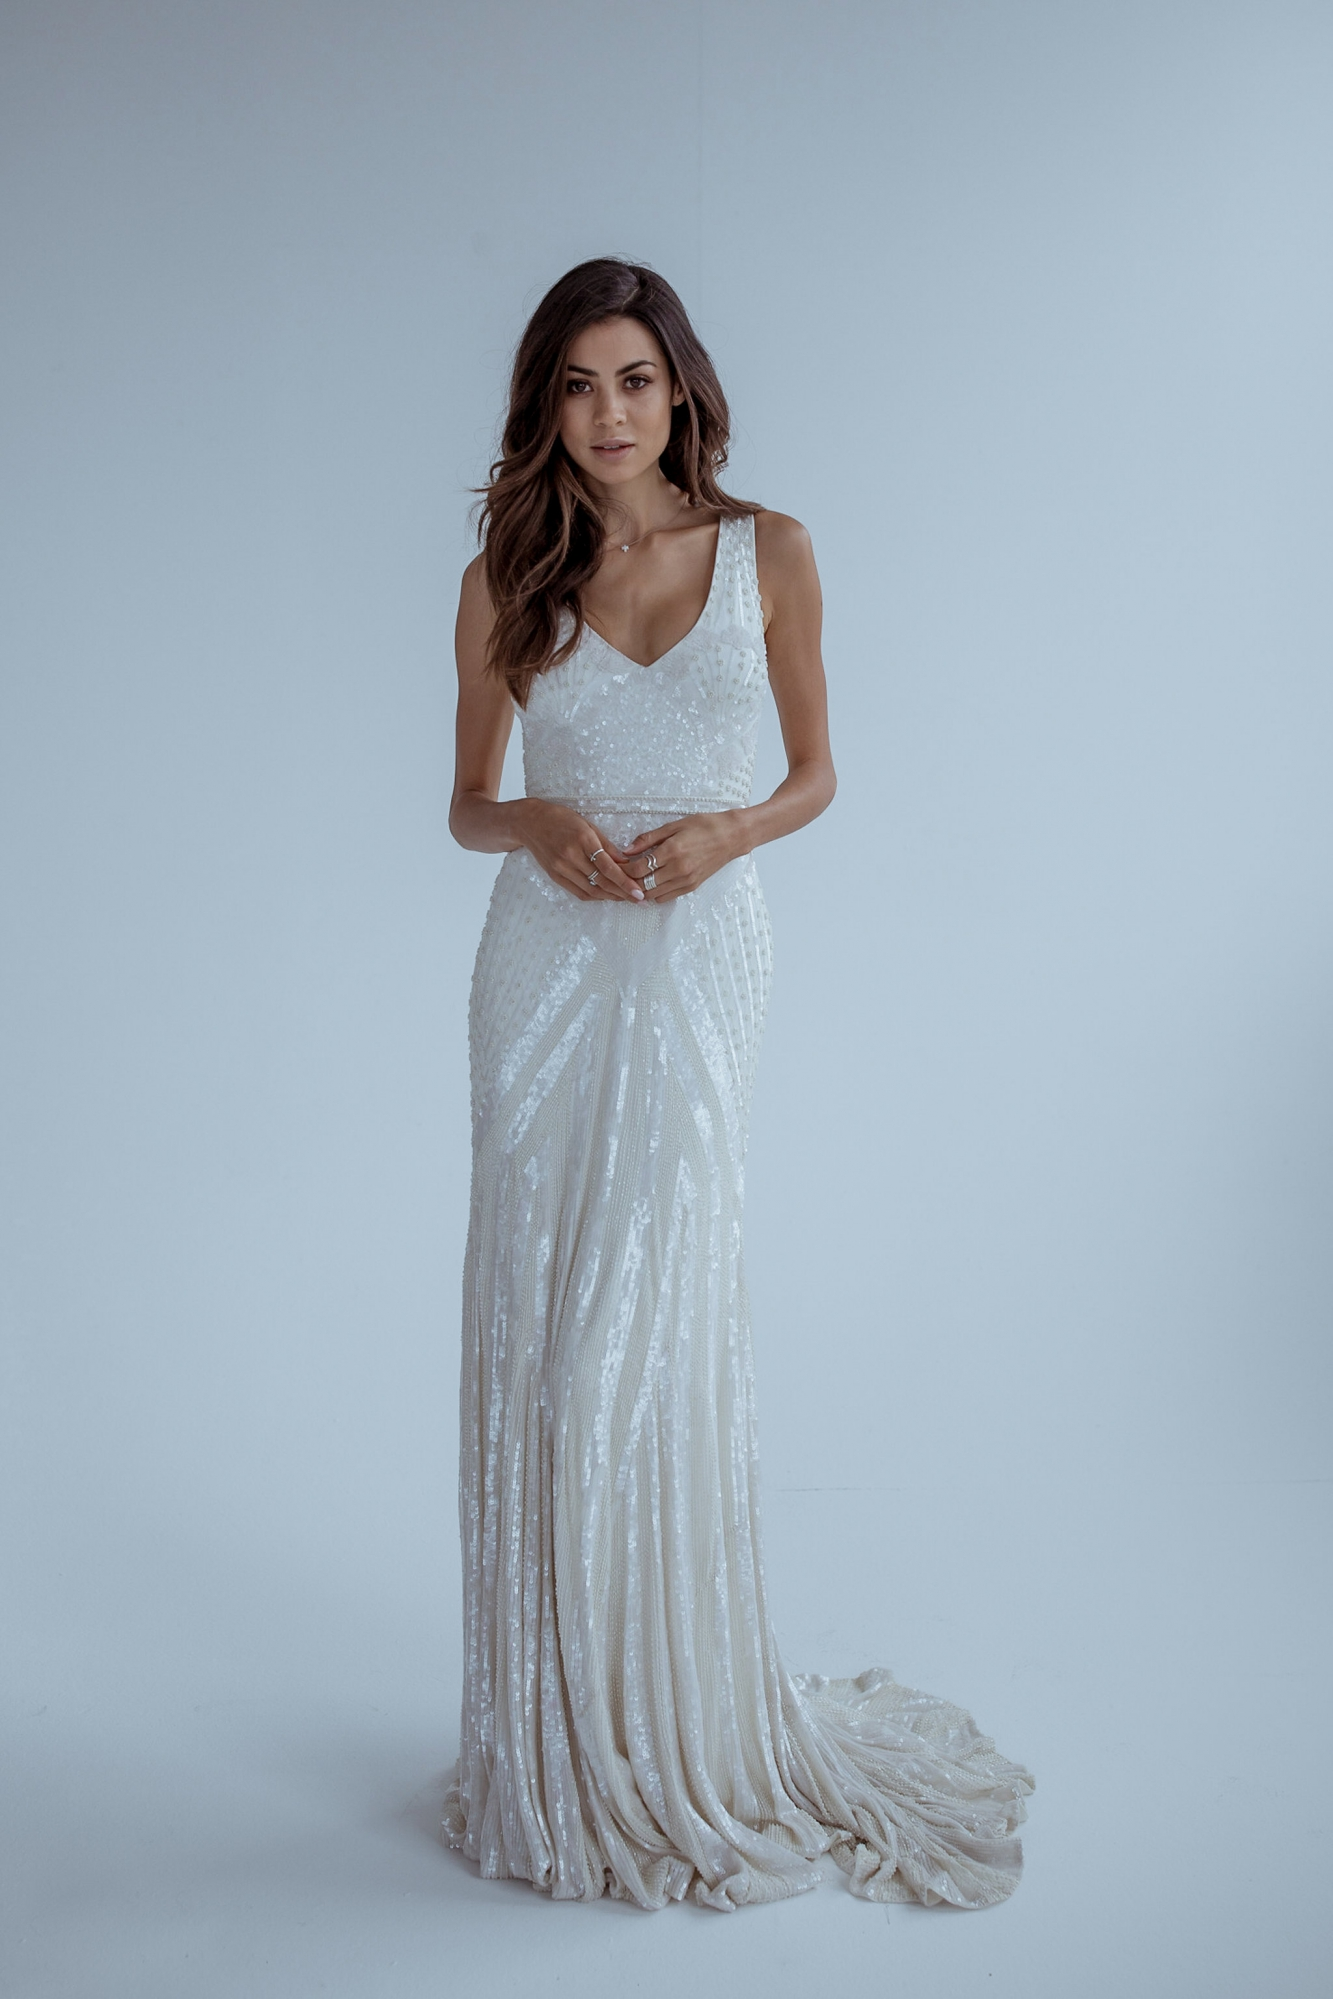 Fontanne is a gorgeous vneck gown that hugs the body for a fitted